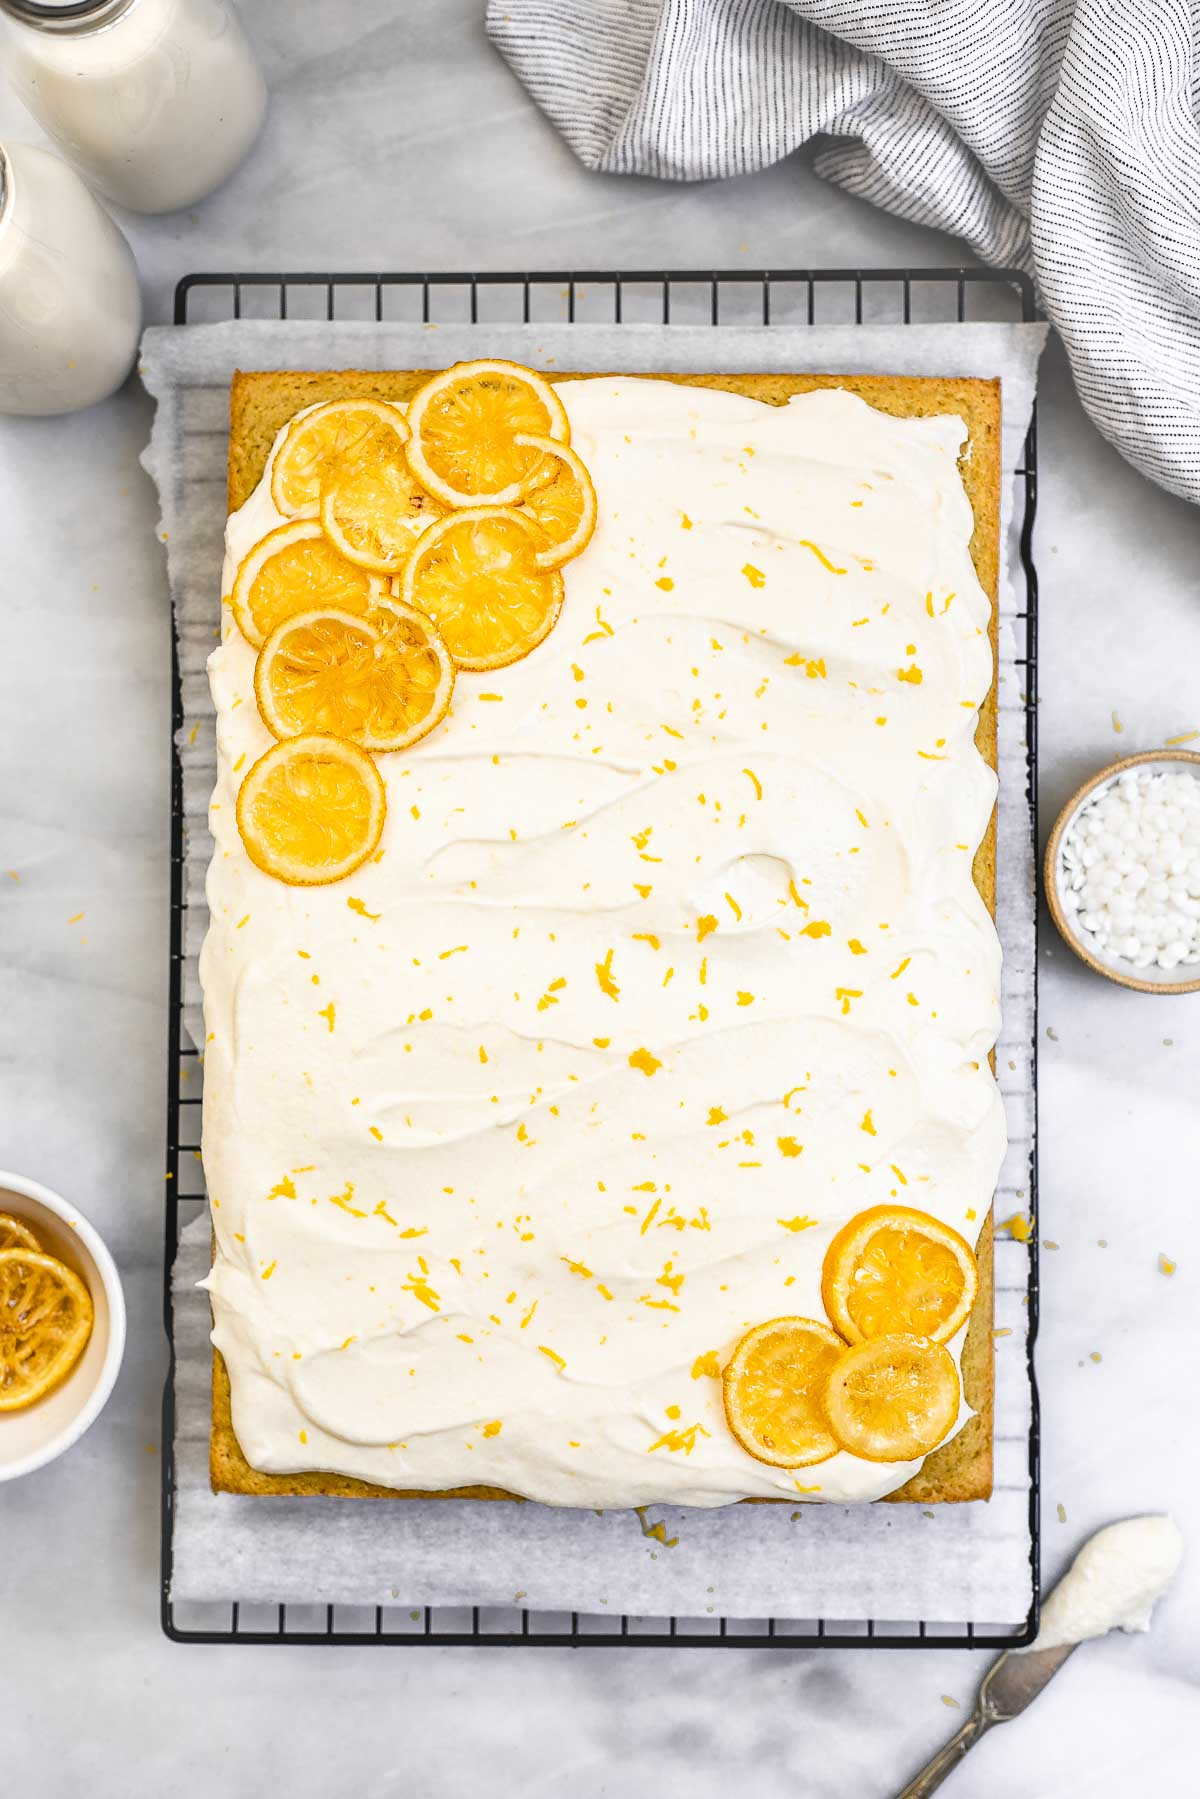 Overhead shot of lemon cake with candied lemons on the side.